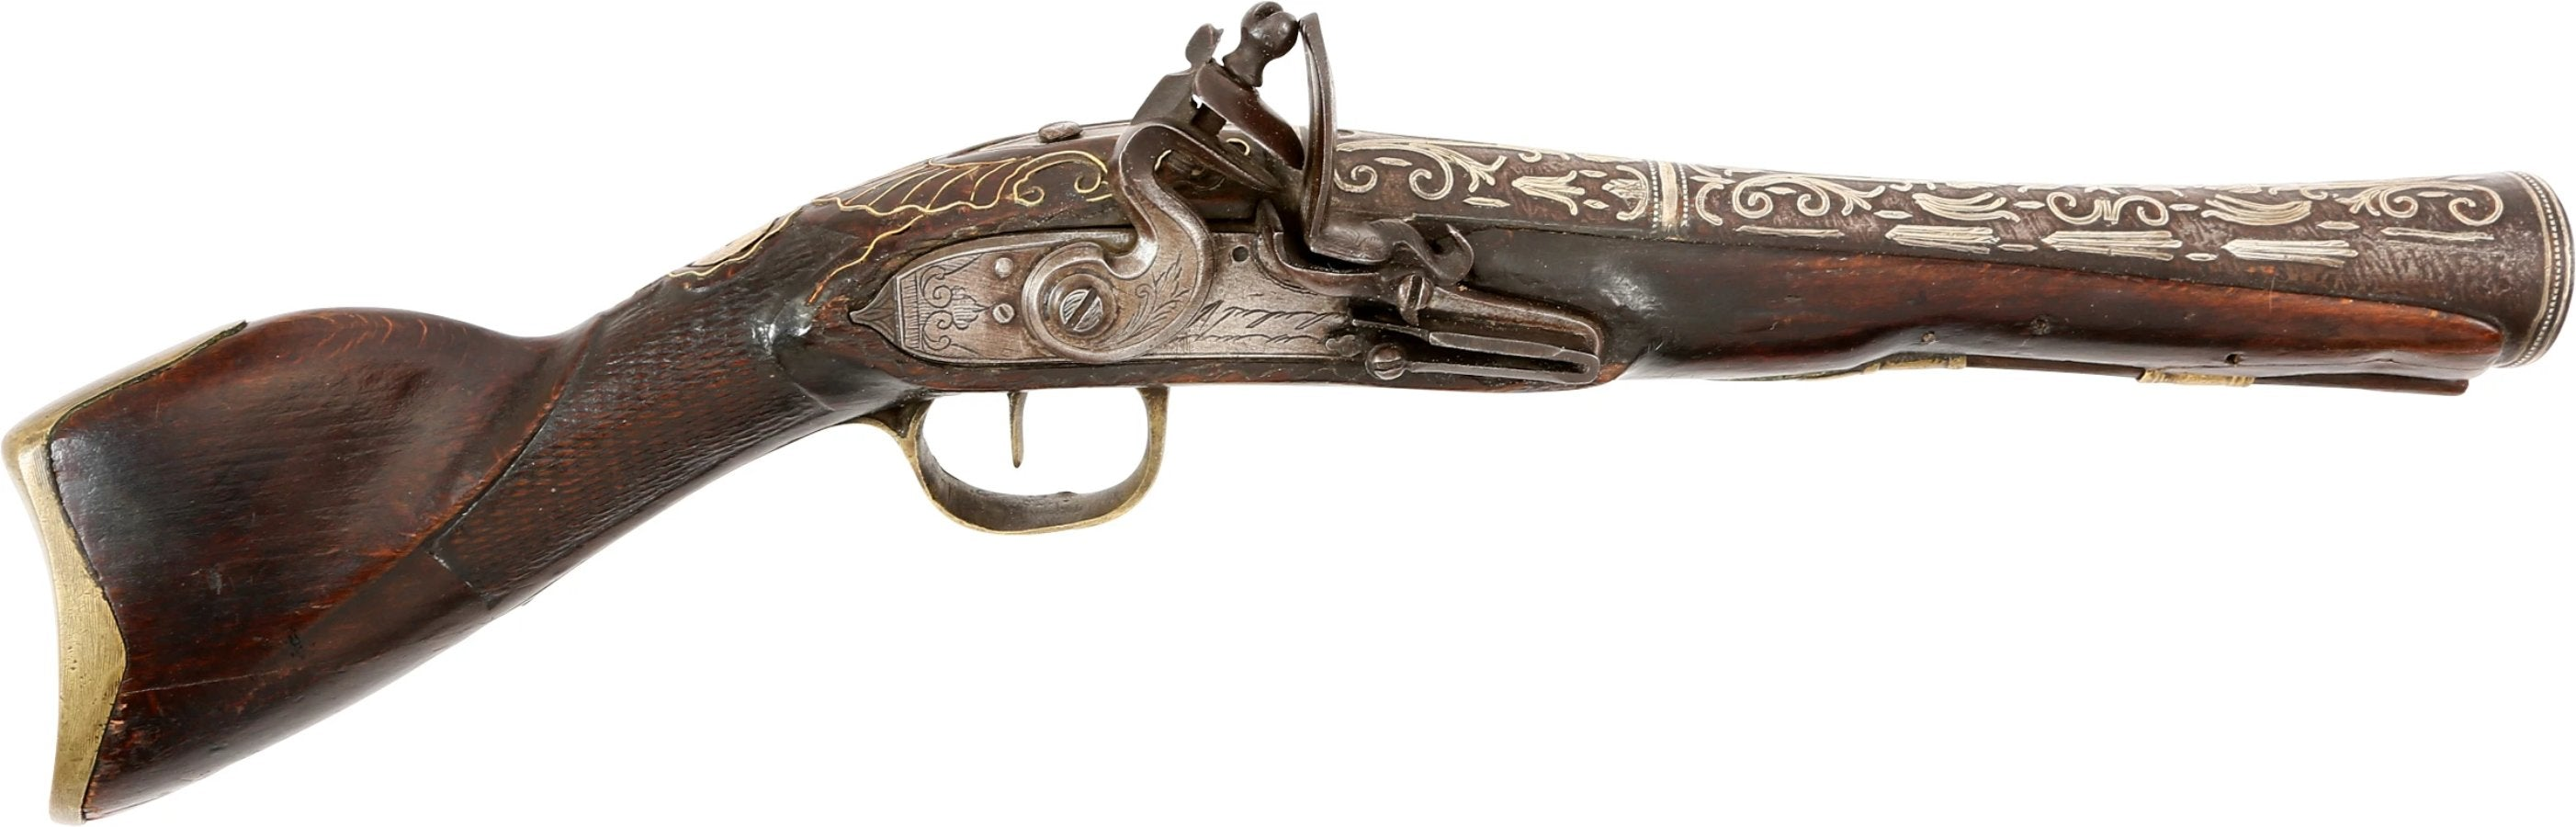 OTTOMAN TURKISH FLINTLOCK BLUNDERBUSS